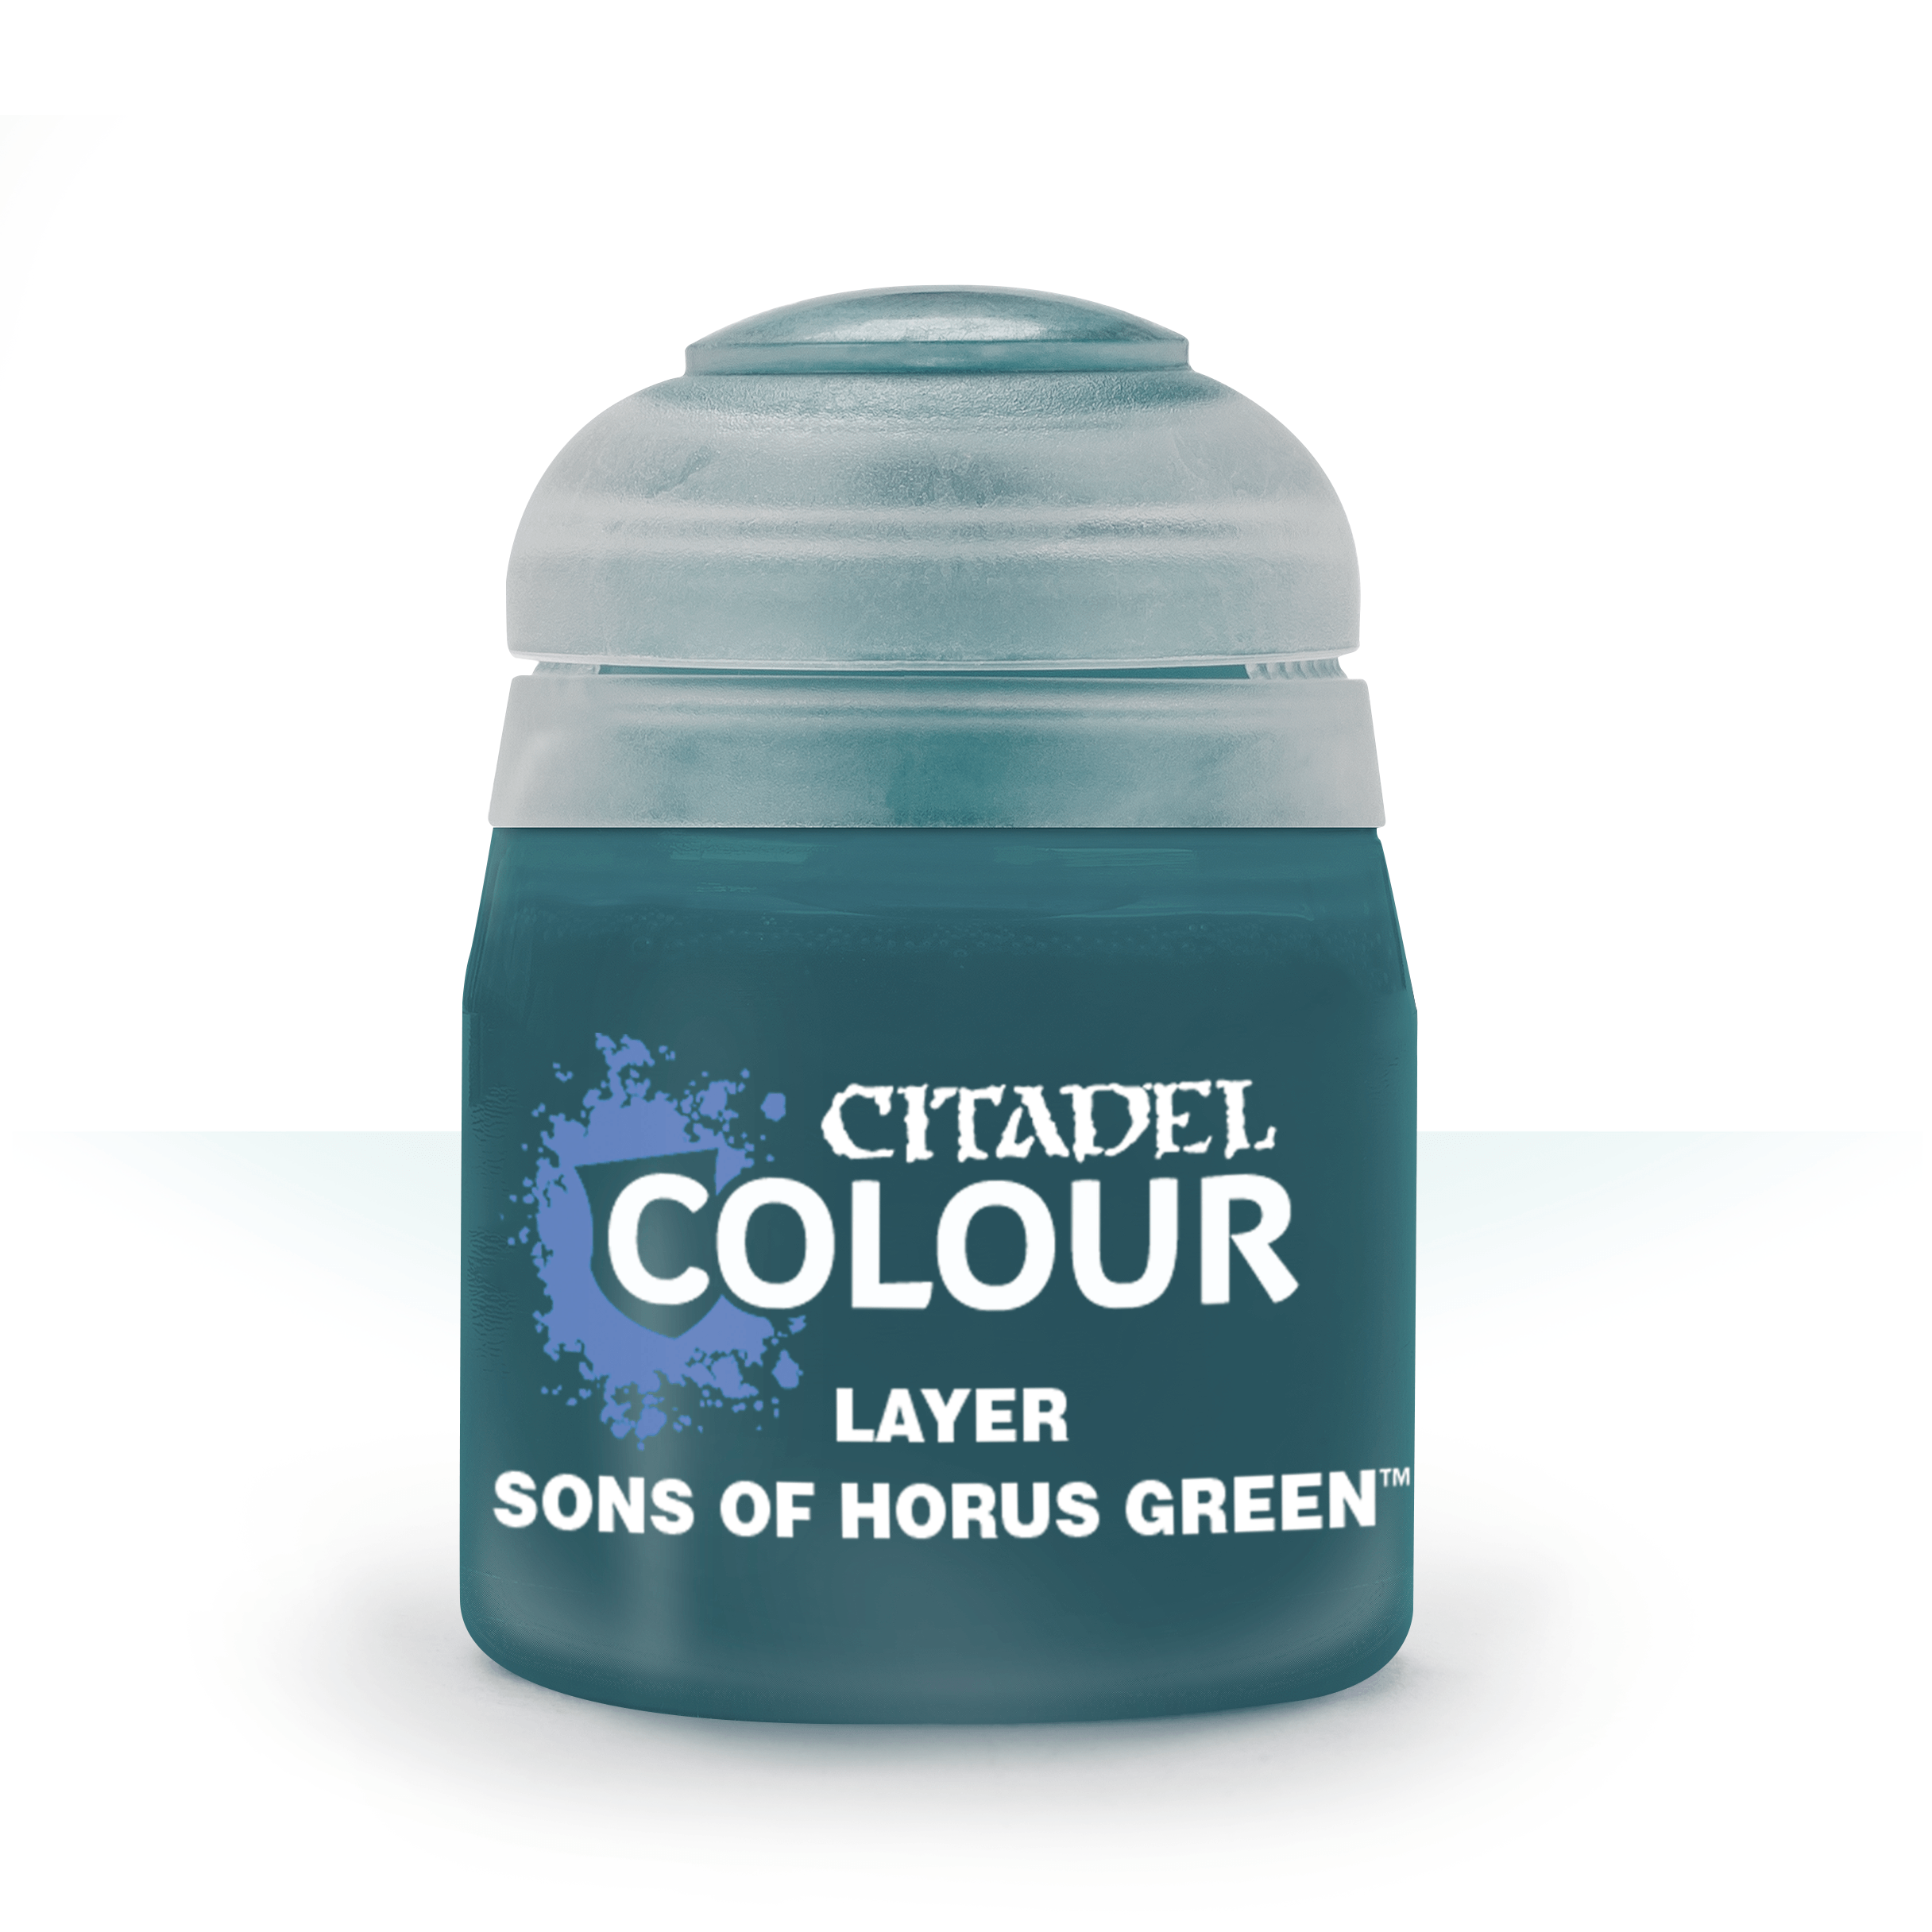 Citadel Layer Paints: Sons of Horus Green